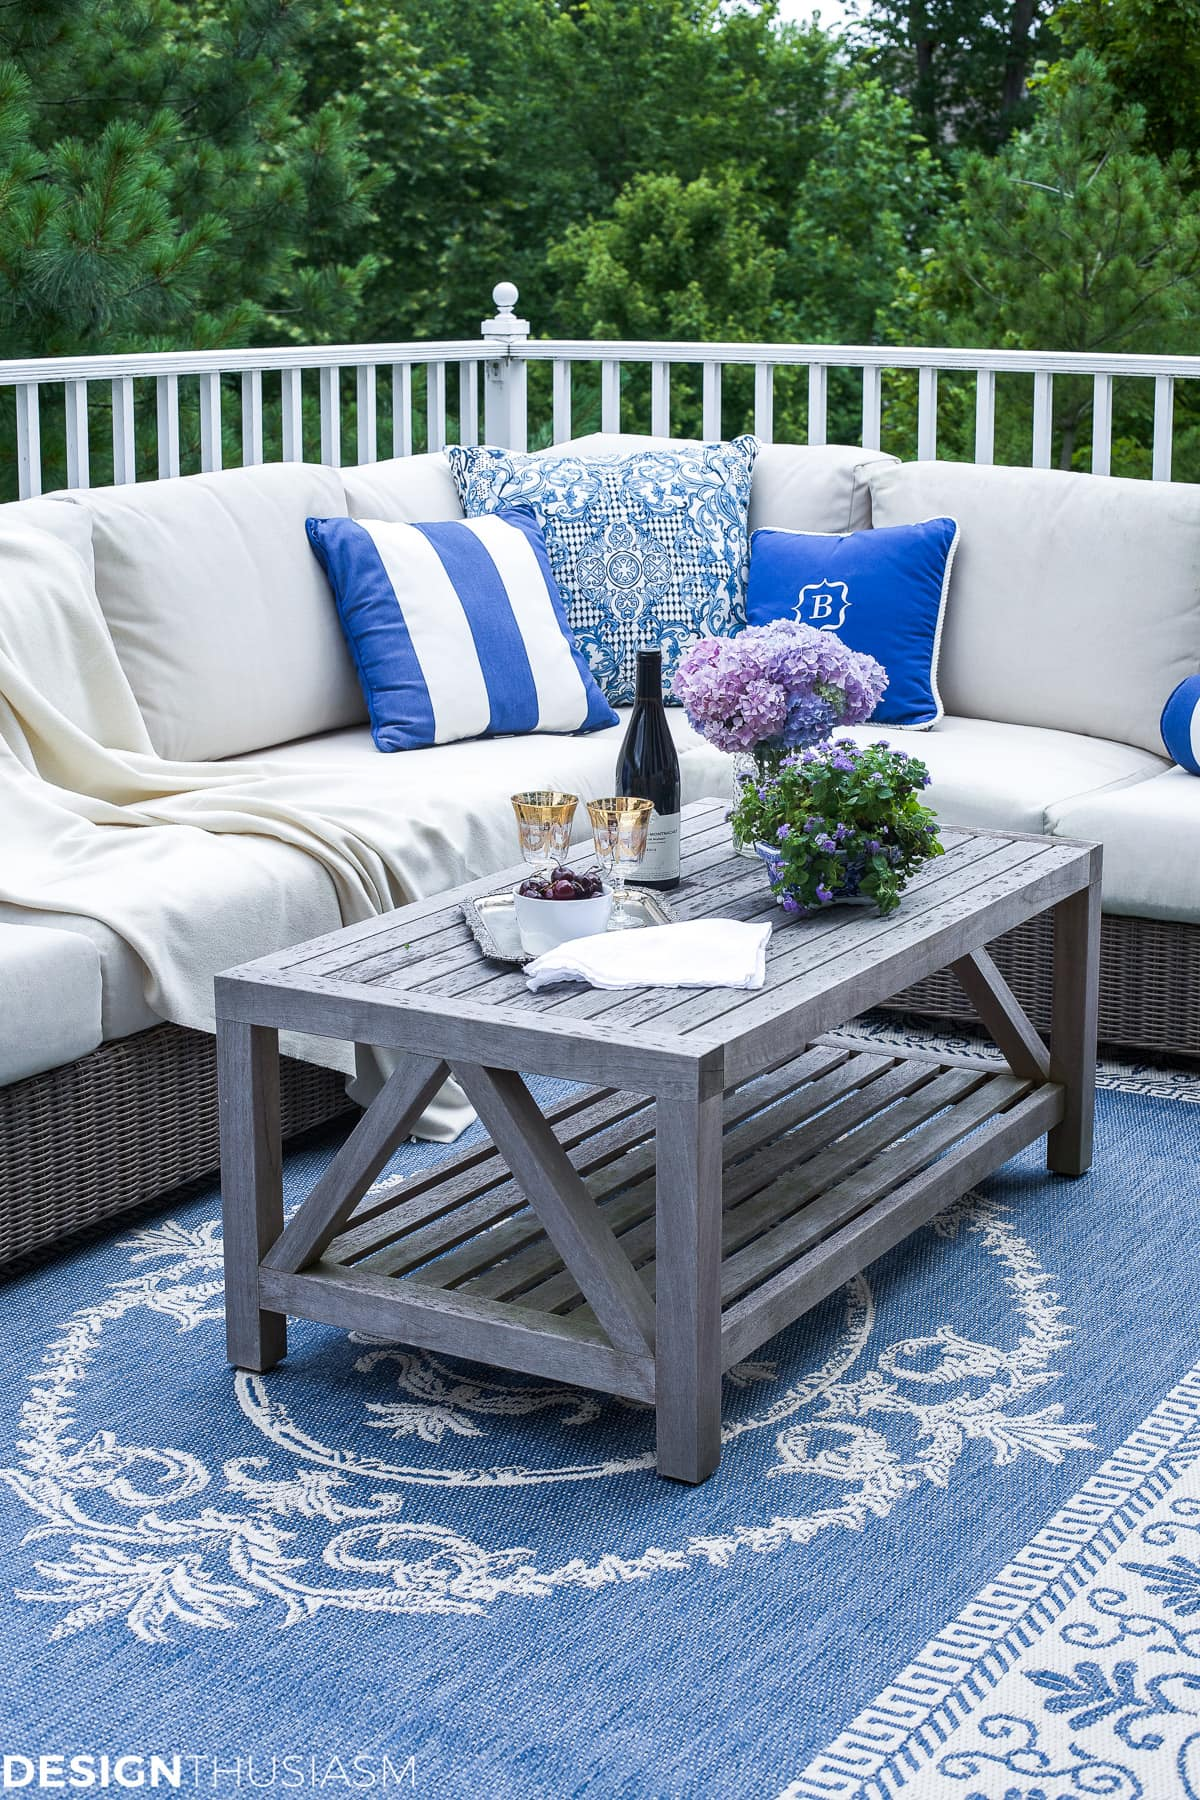 Outdoor Lounge How e Piece Can Pull Your Patio Decor To her